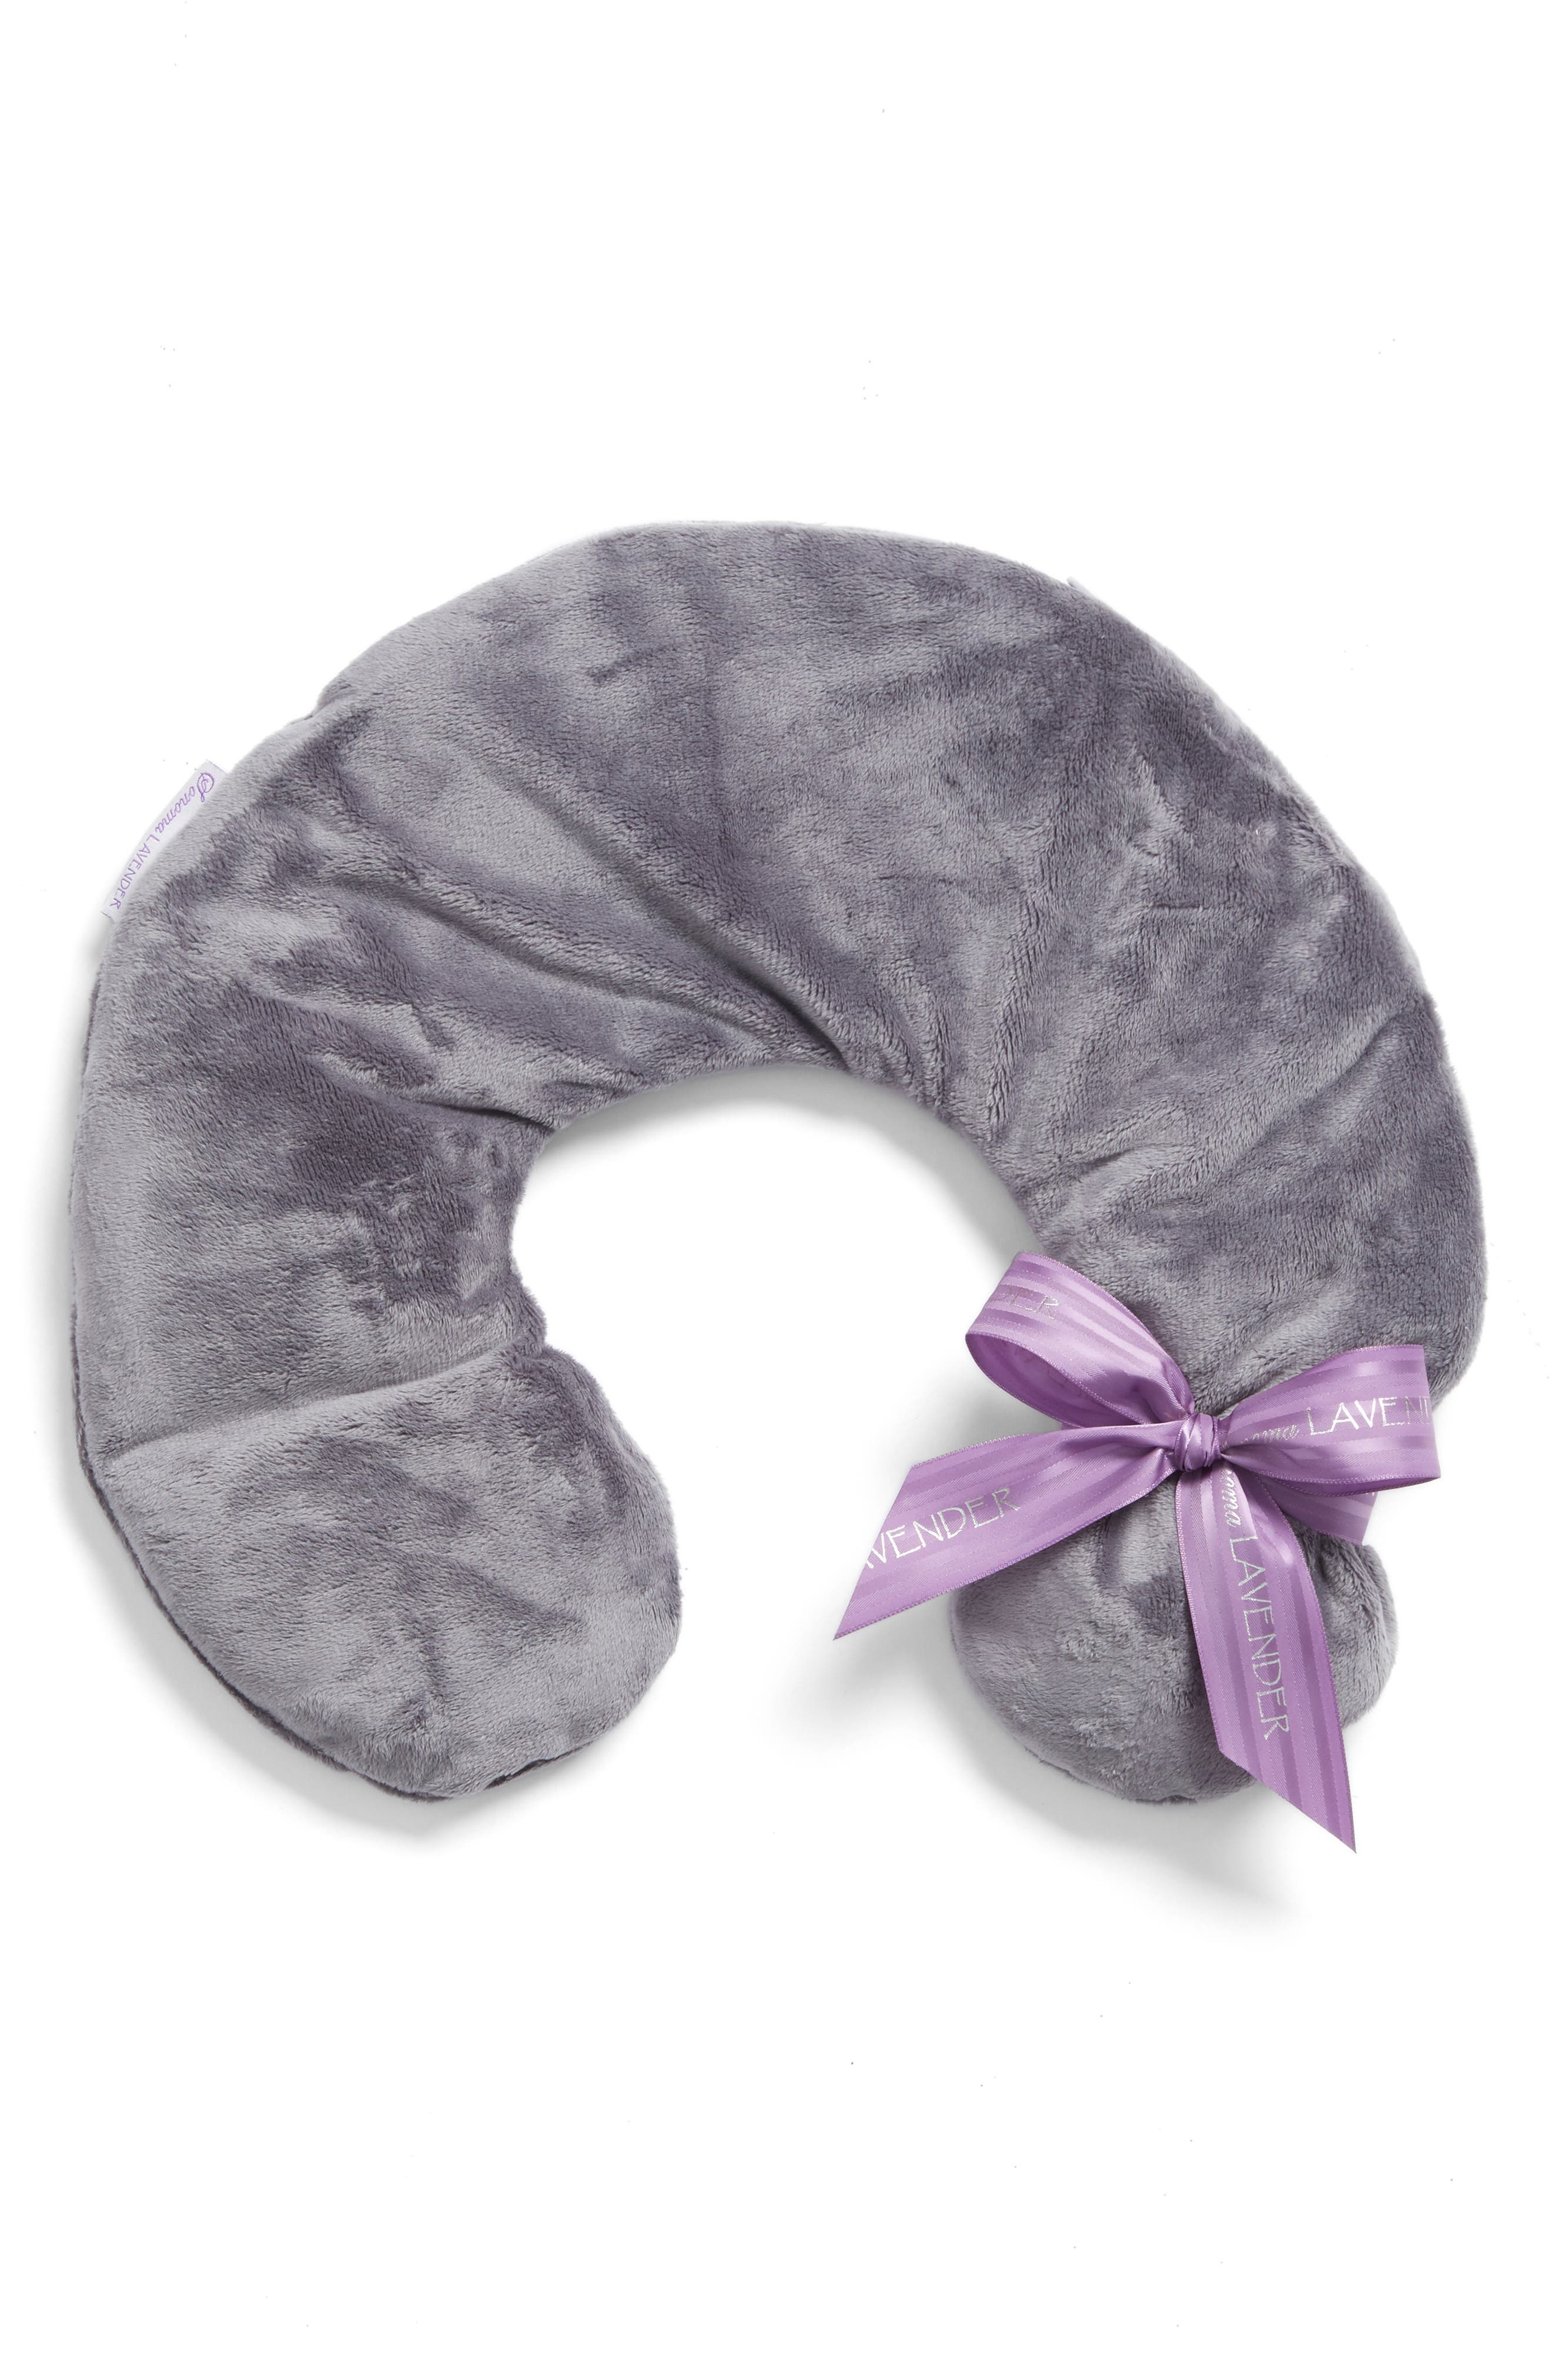 Sonoma Lavender Solid Charcoal Grey Neck Pillow ($44 Value)